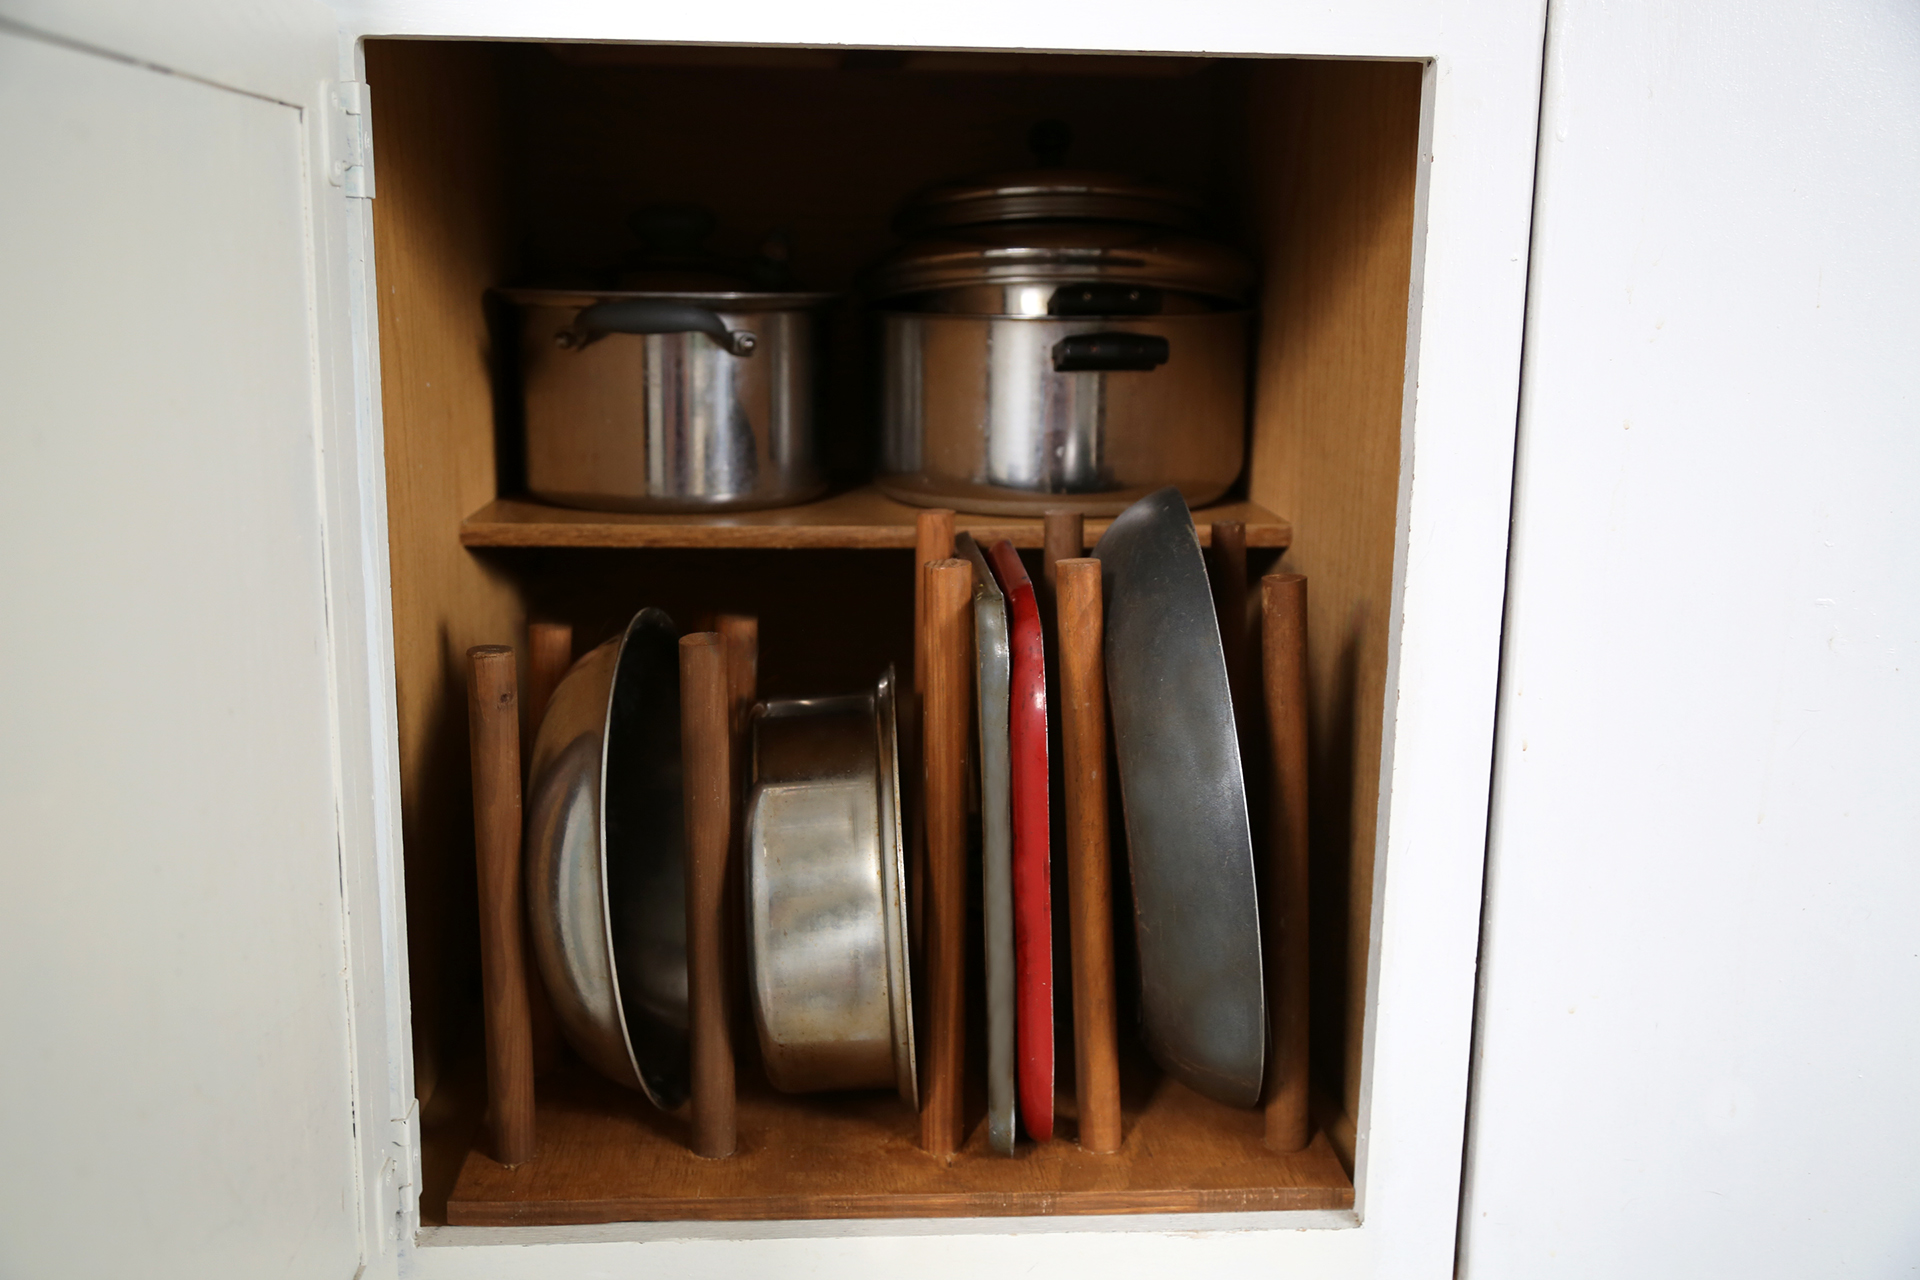 How to Make Your Own Kitchen Cupboard Organizer